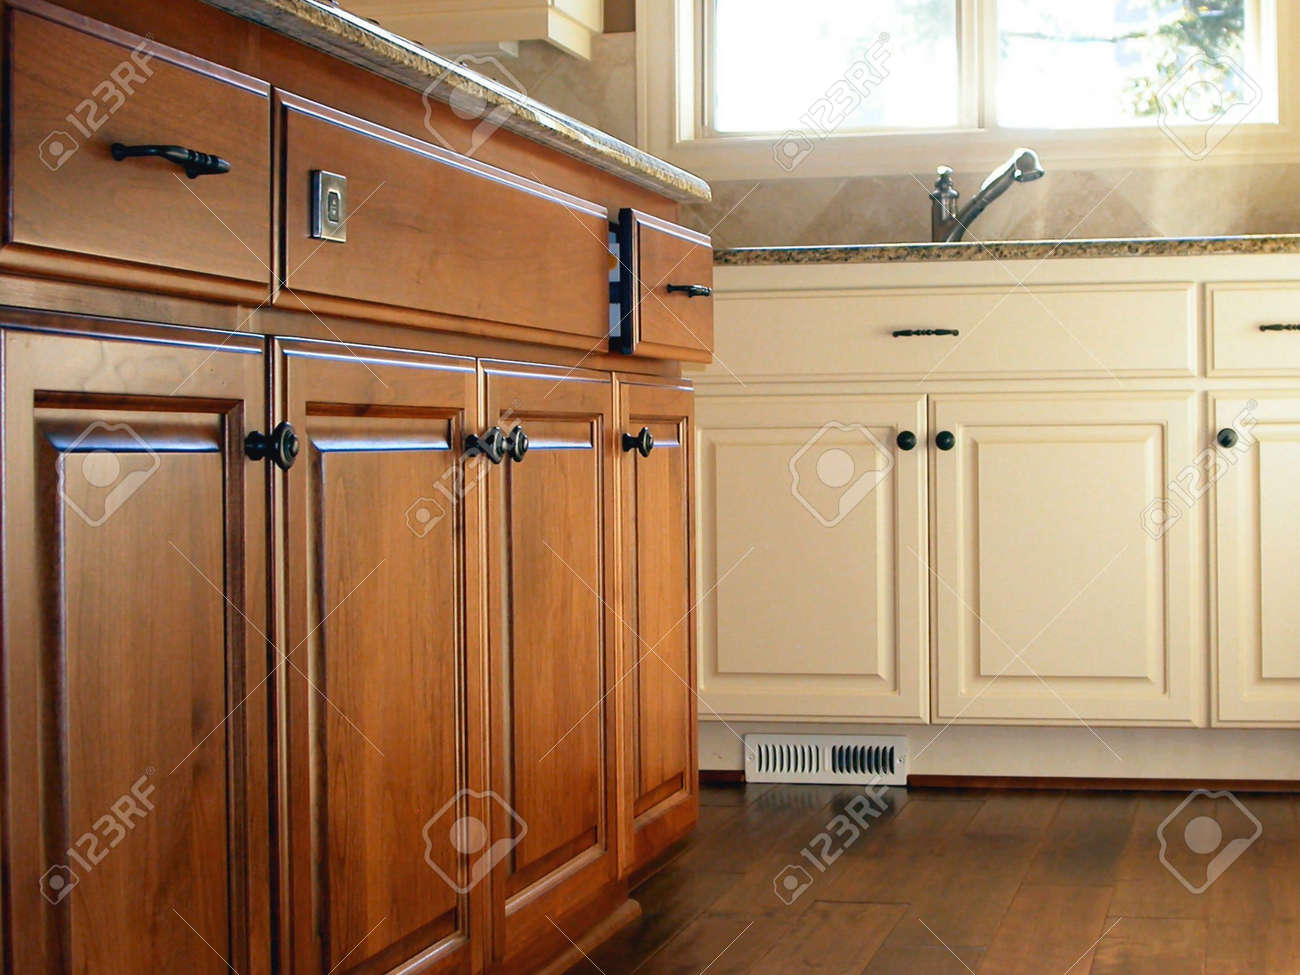 photo kitchen cabinets stock kitchen cabinets Kitchen Cabinets Stock Photo